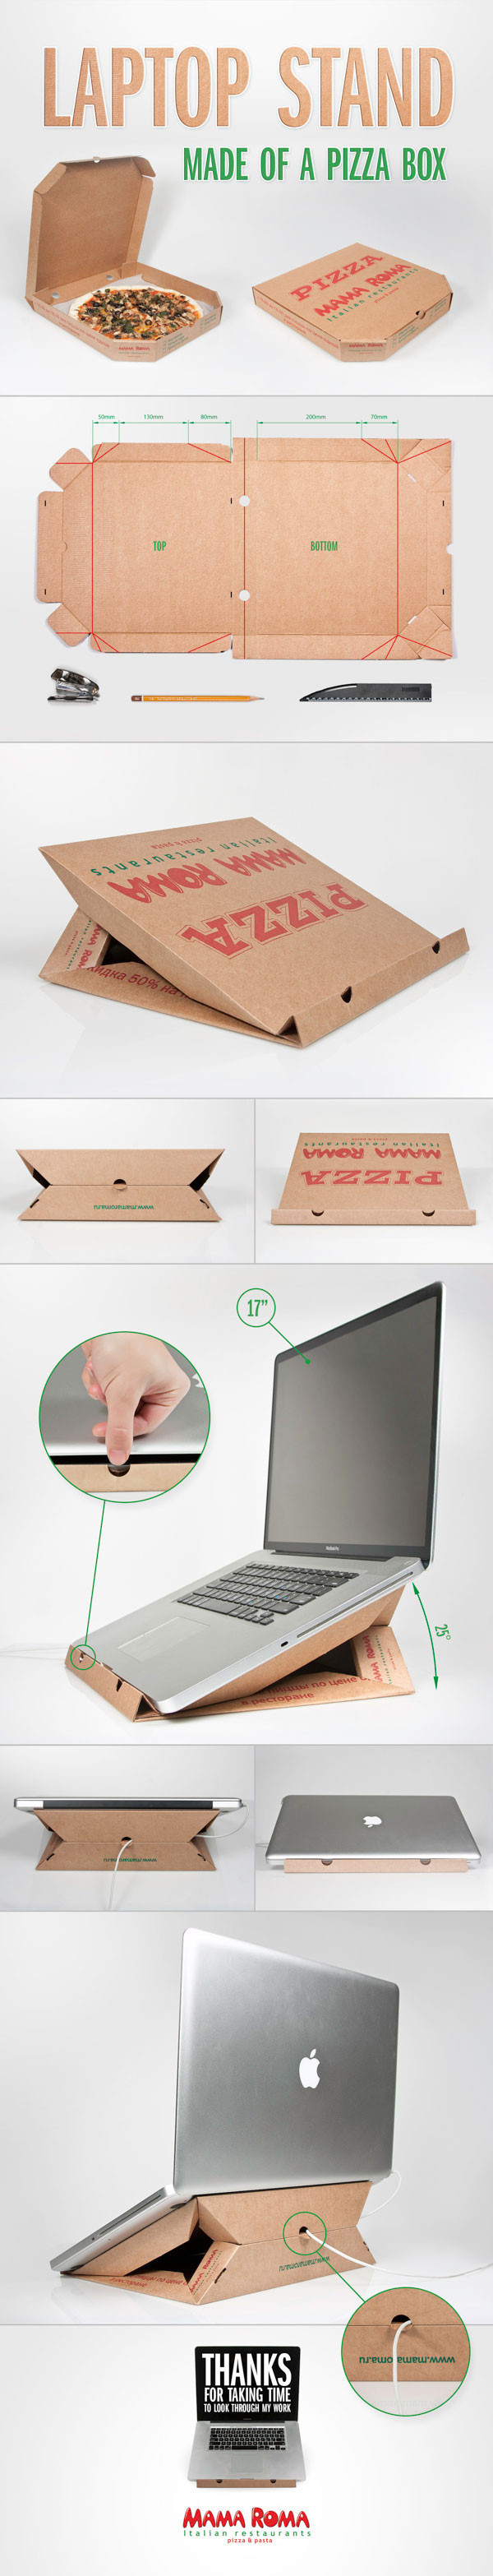 laptop stand made of pizza box i new idea homepage blechdosen